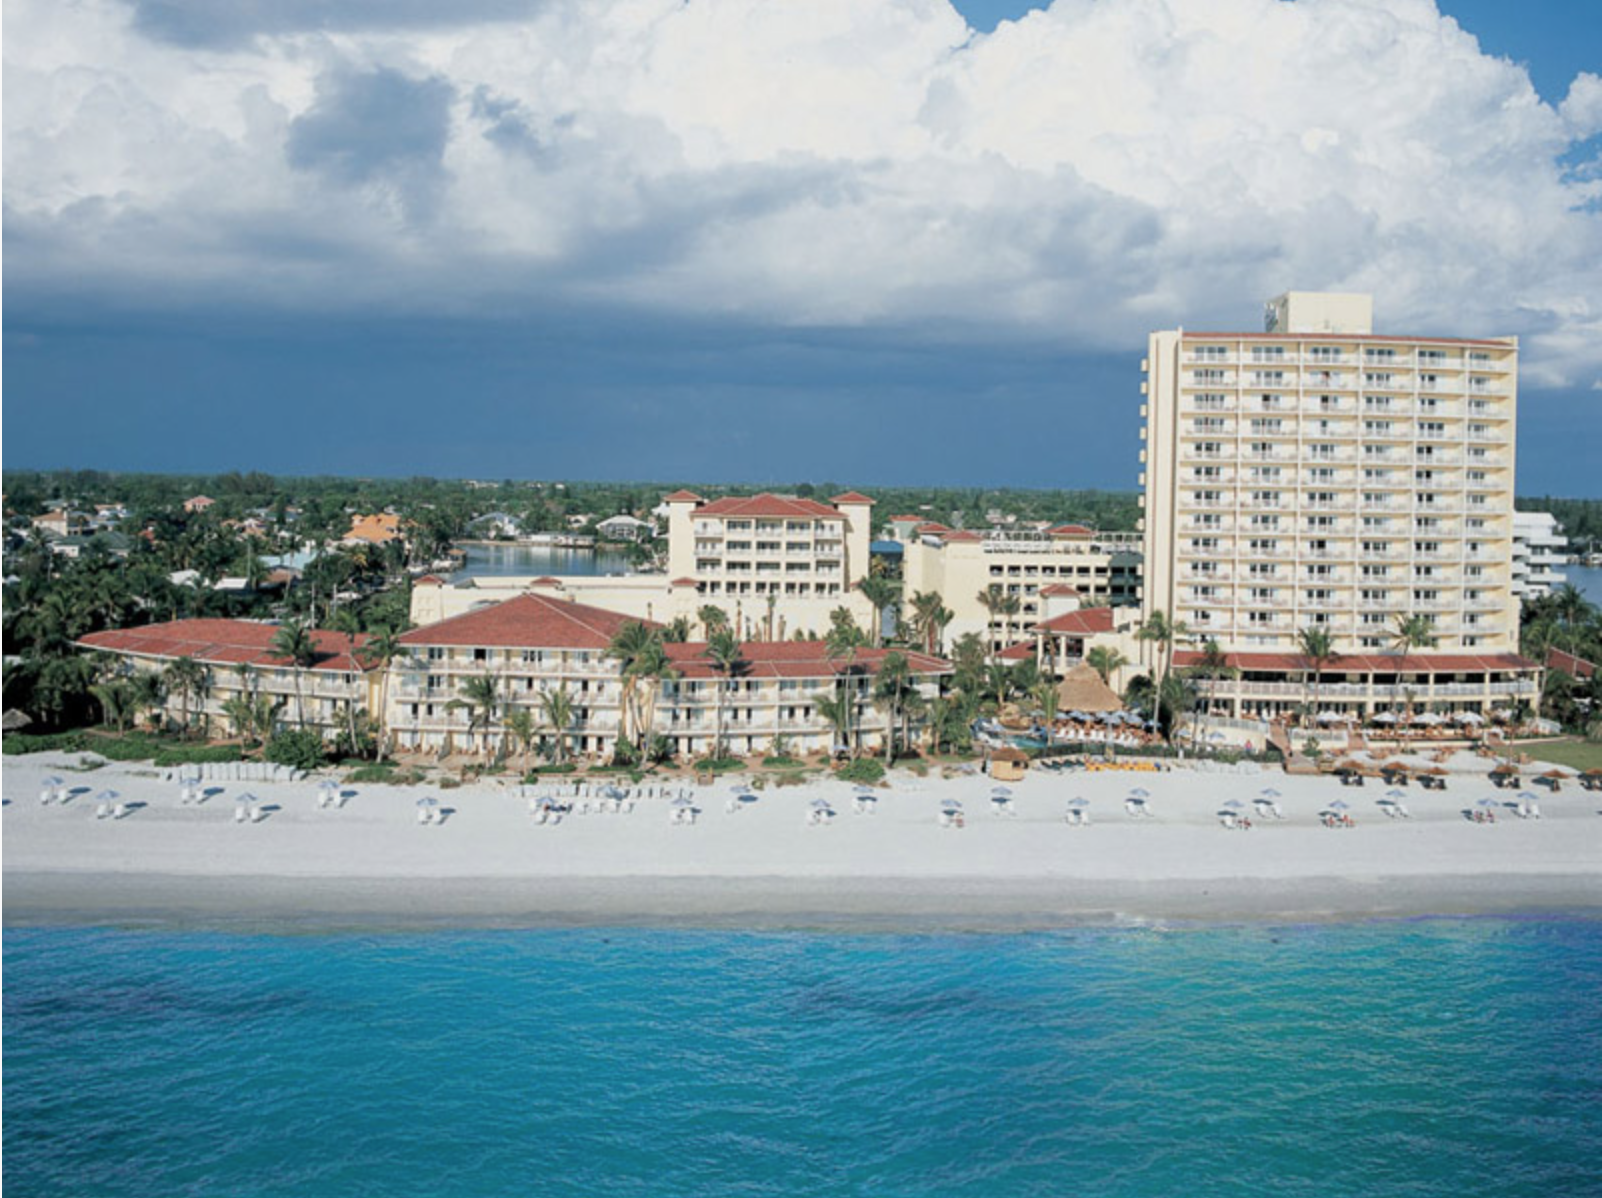 Above: The beachfront boutique front Florida hotel will host the Oceans of Opportunity event this September.